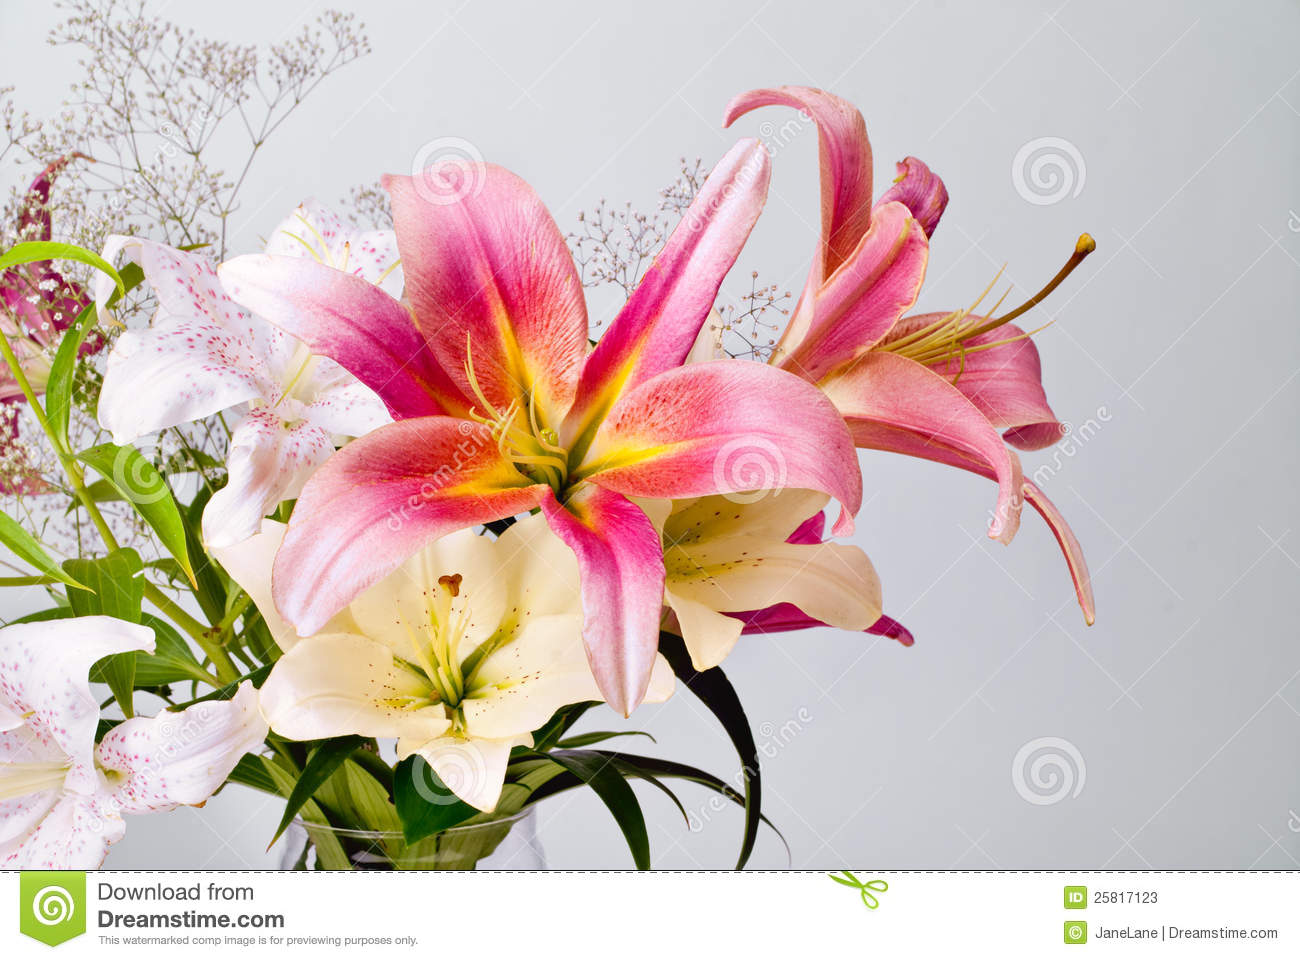 White and pink lily flowers stock image image of background white and pink lily flowers izmirmasajfo